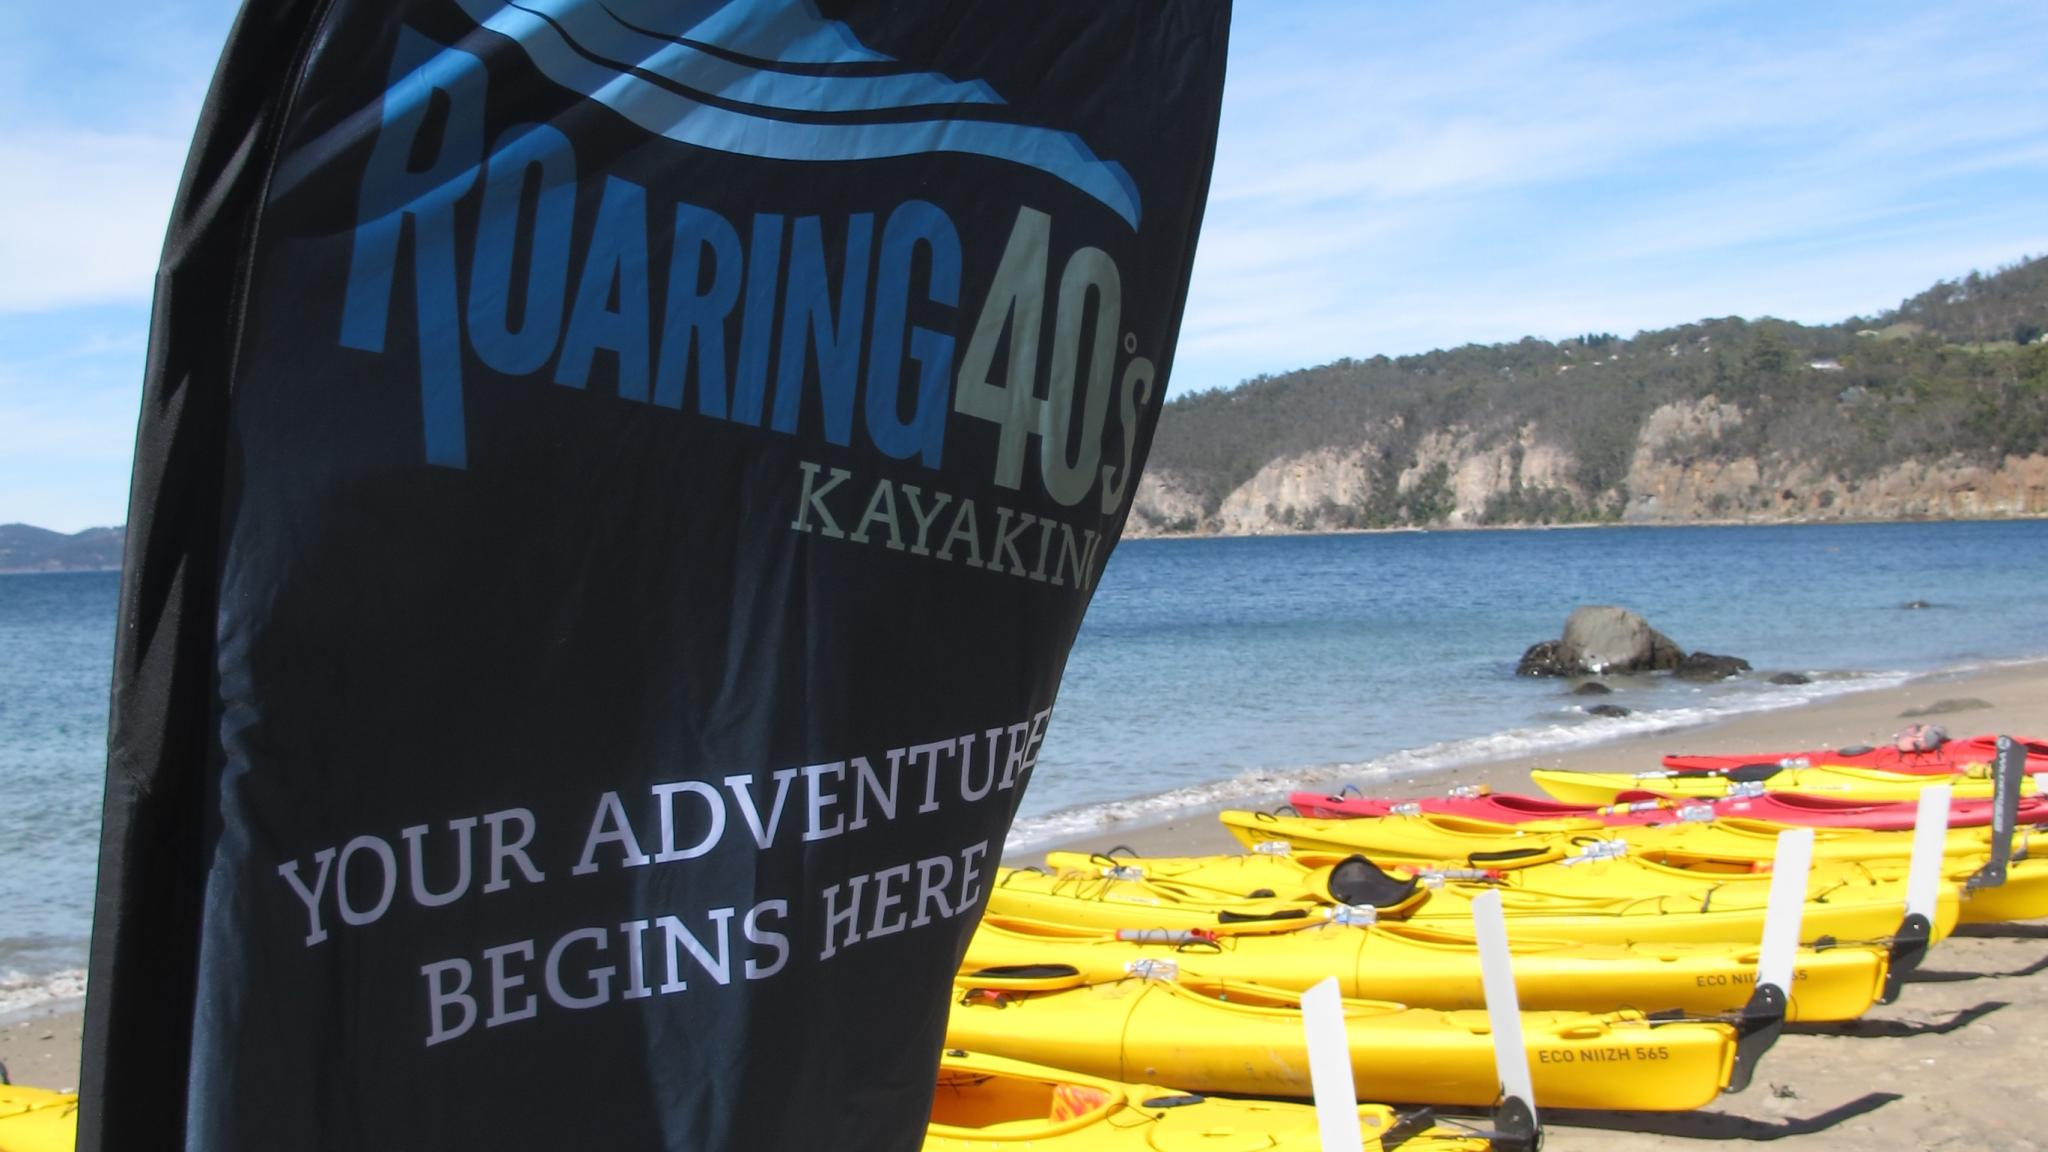 Roaring 40ºs Kayaking - Group kayaking tours Hobart Tasmania